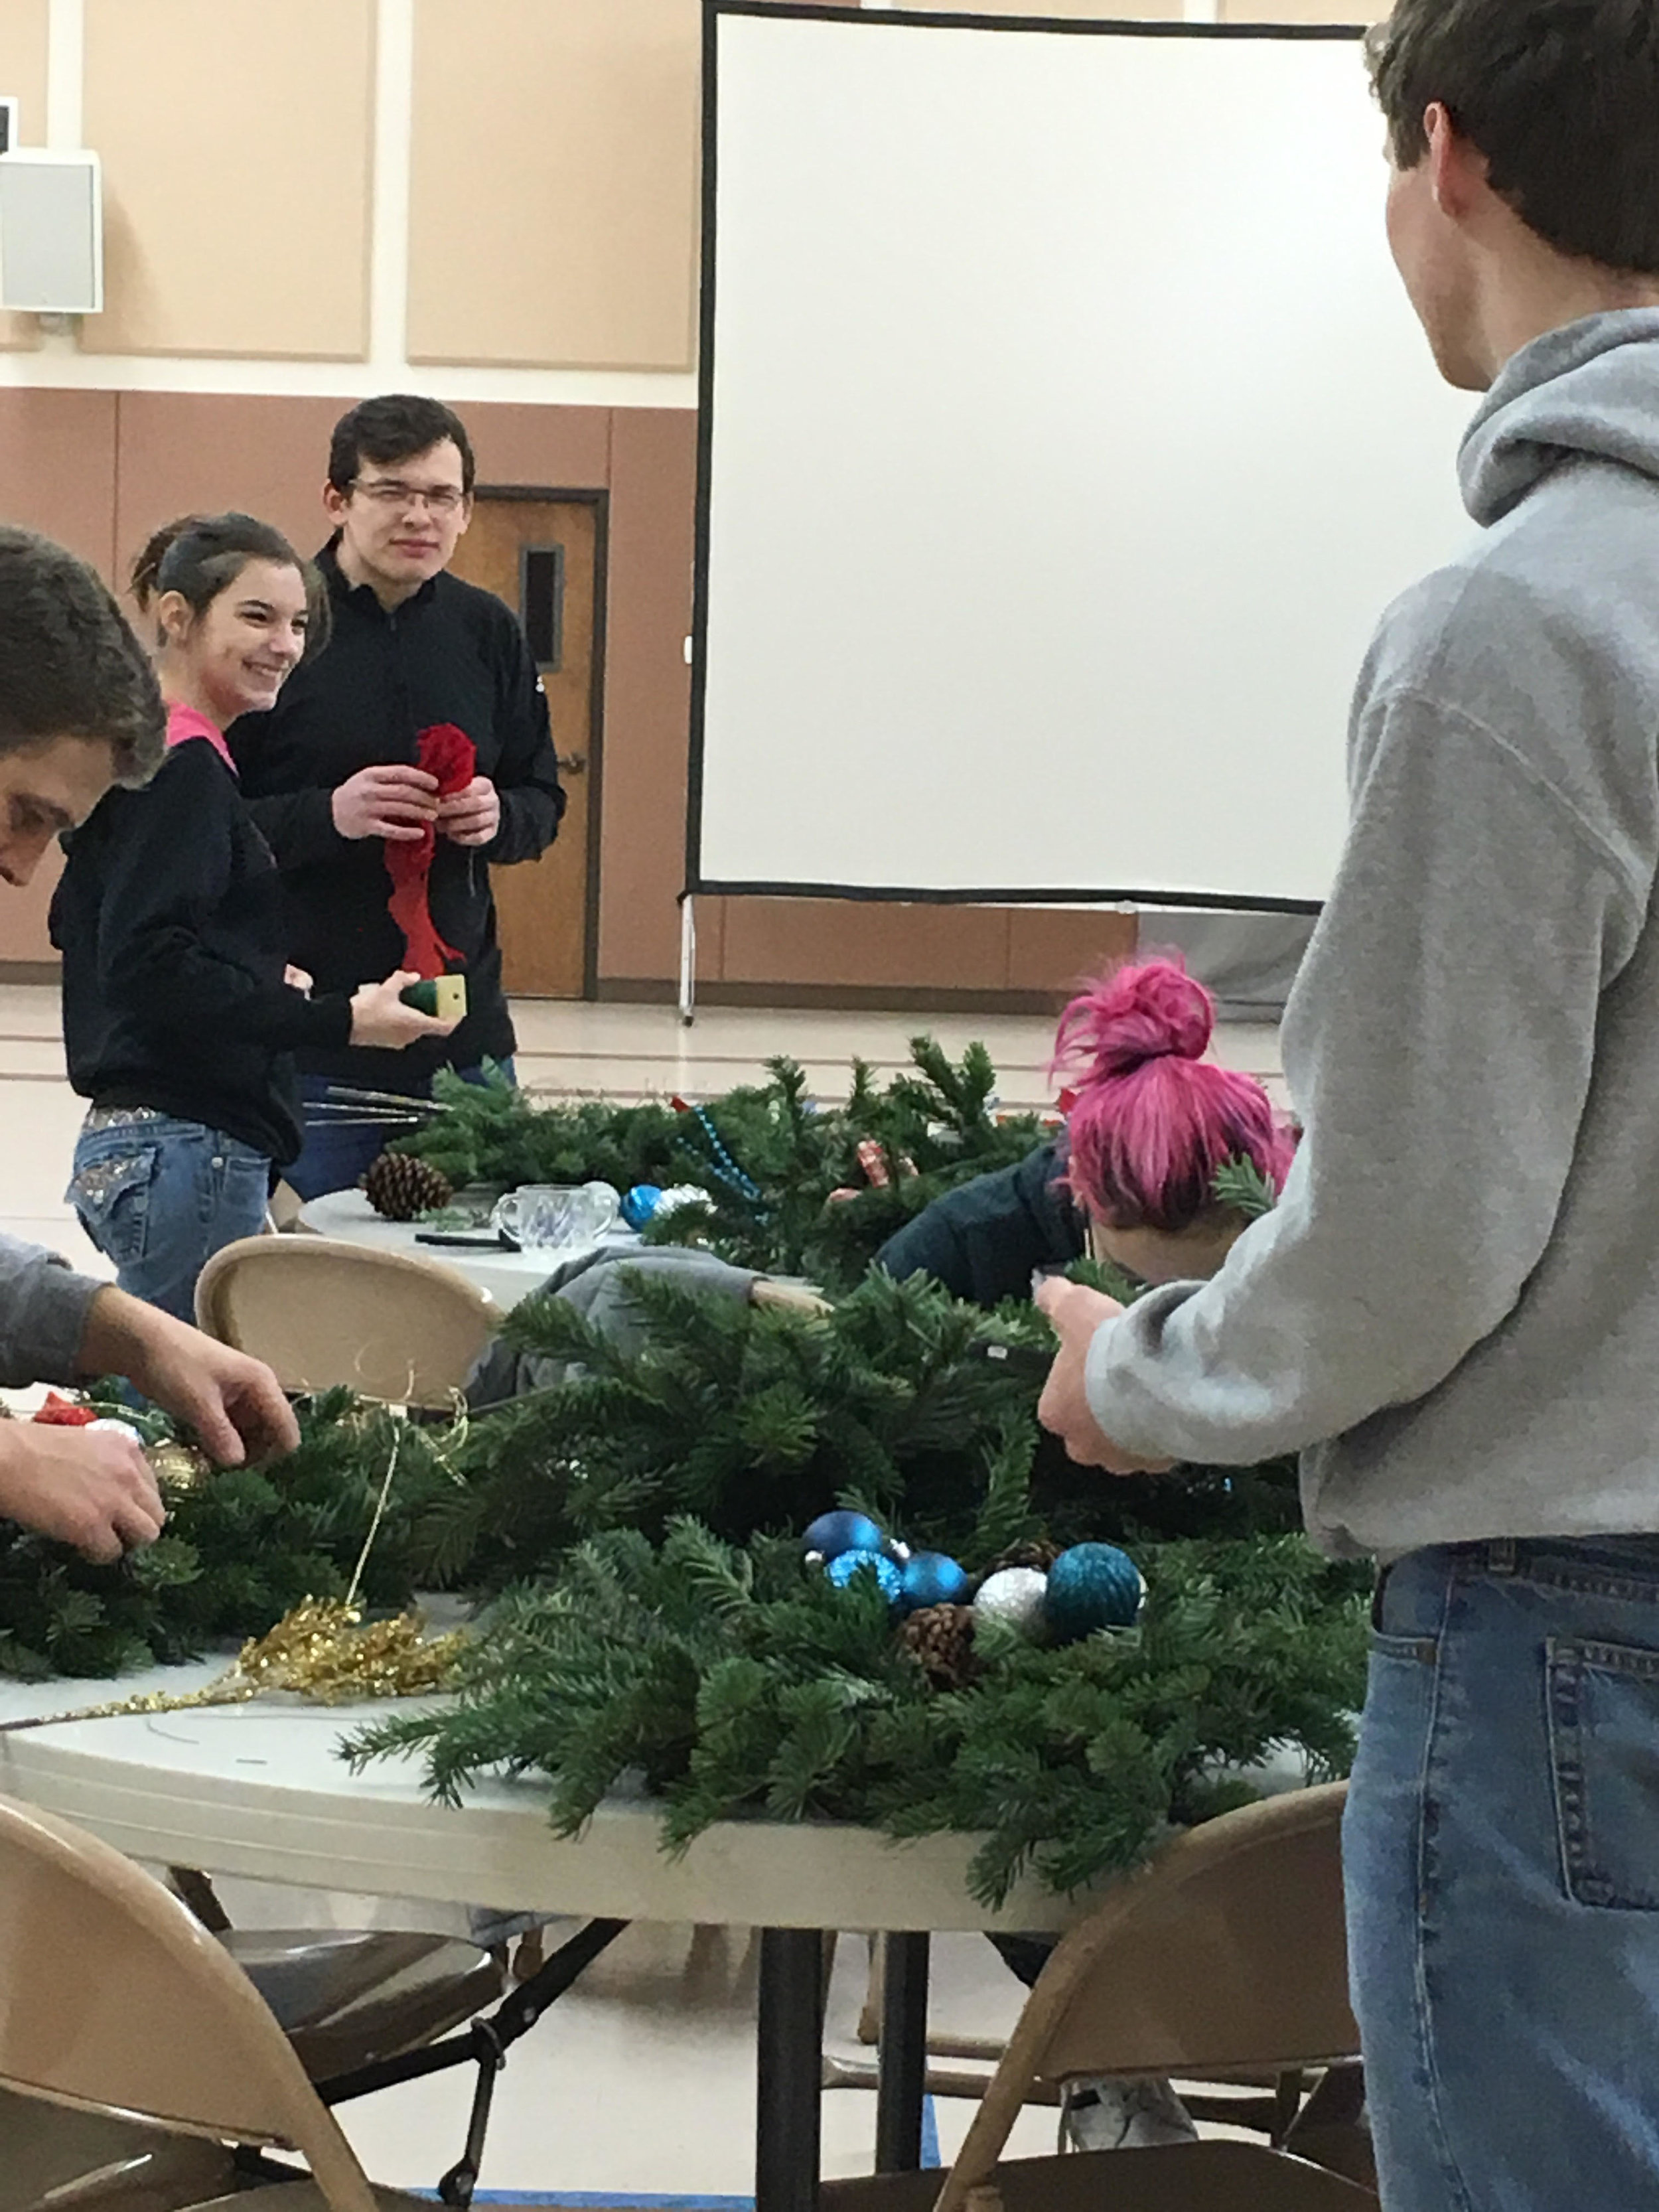 Youth Volunteers at  Albany Mennonite Church  (AMC) constructing wreaths for Albany Helping Hands.